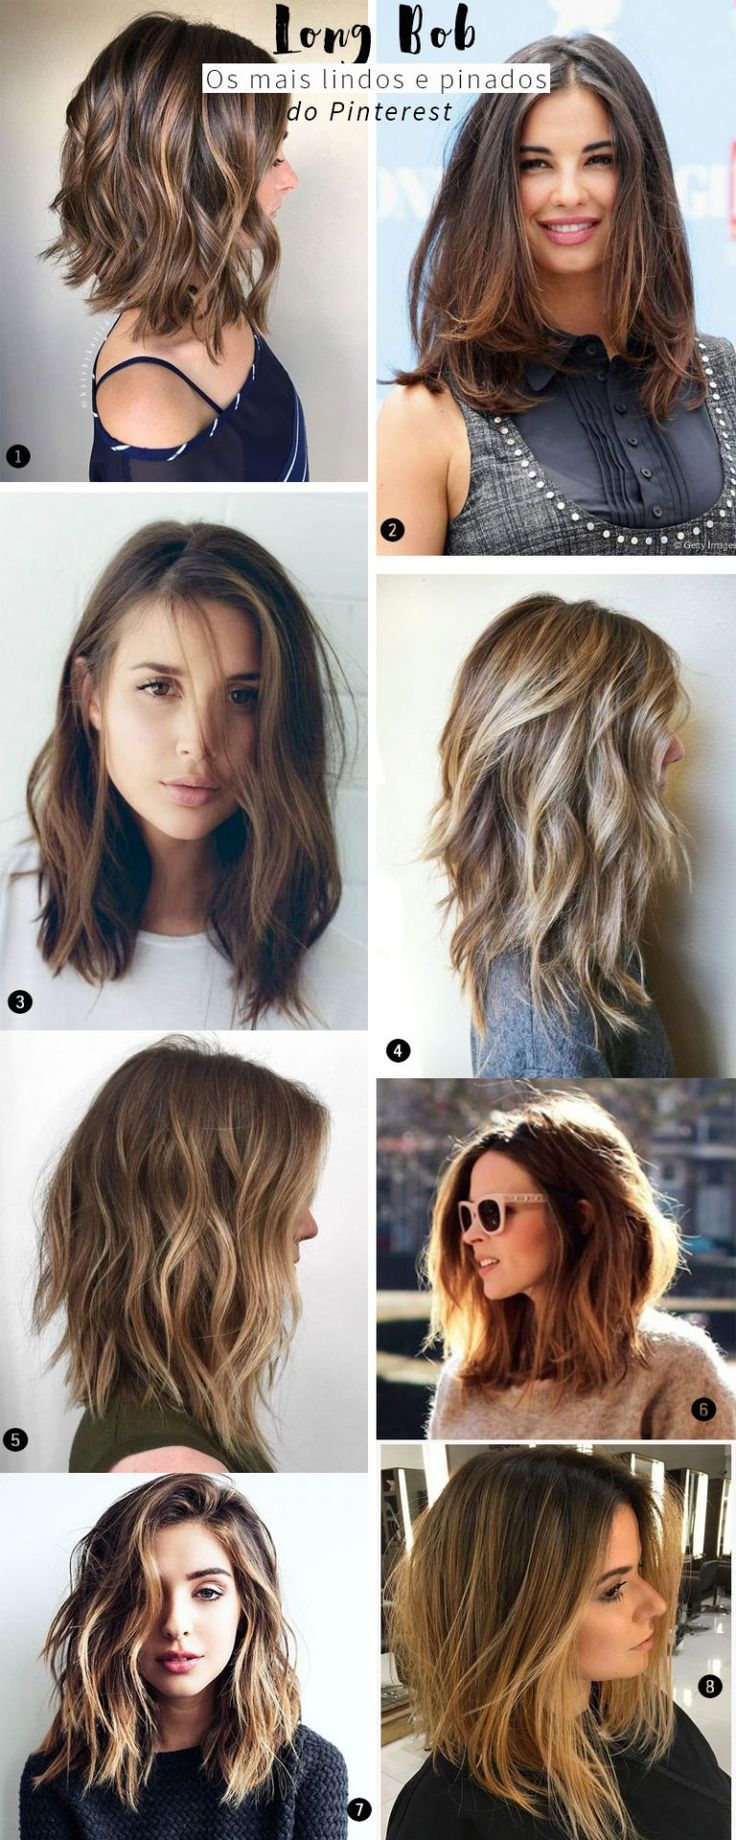 Corte long bob os mais lindos e pinados do pinterest hair cuts